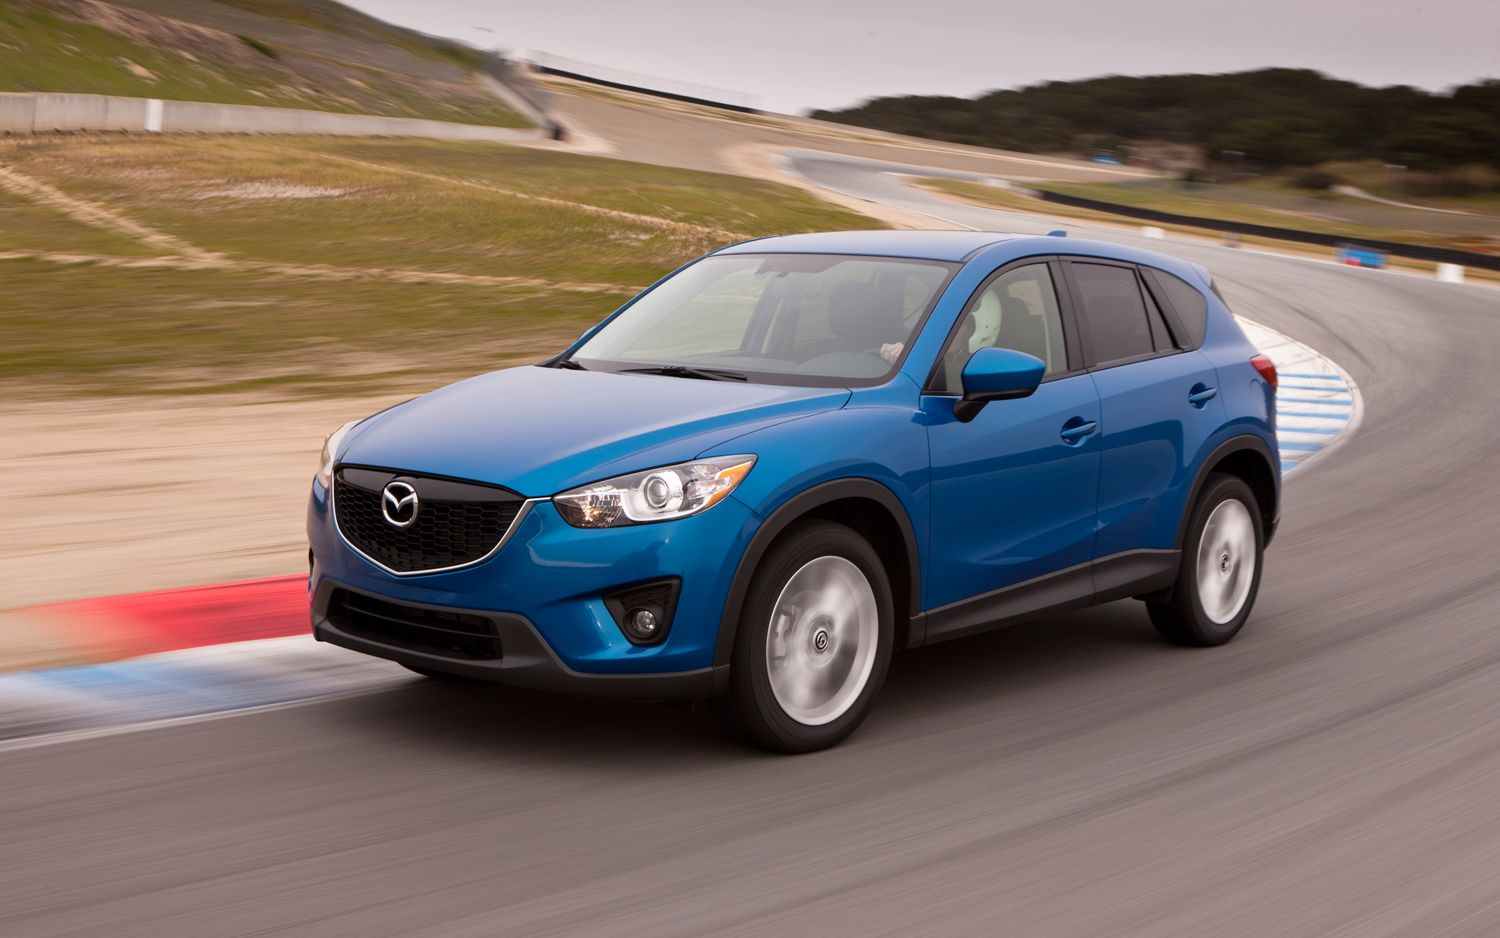 2014 Mazda Cx 5 First Drive Mazda Mazda Cars Best Suv